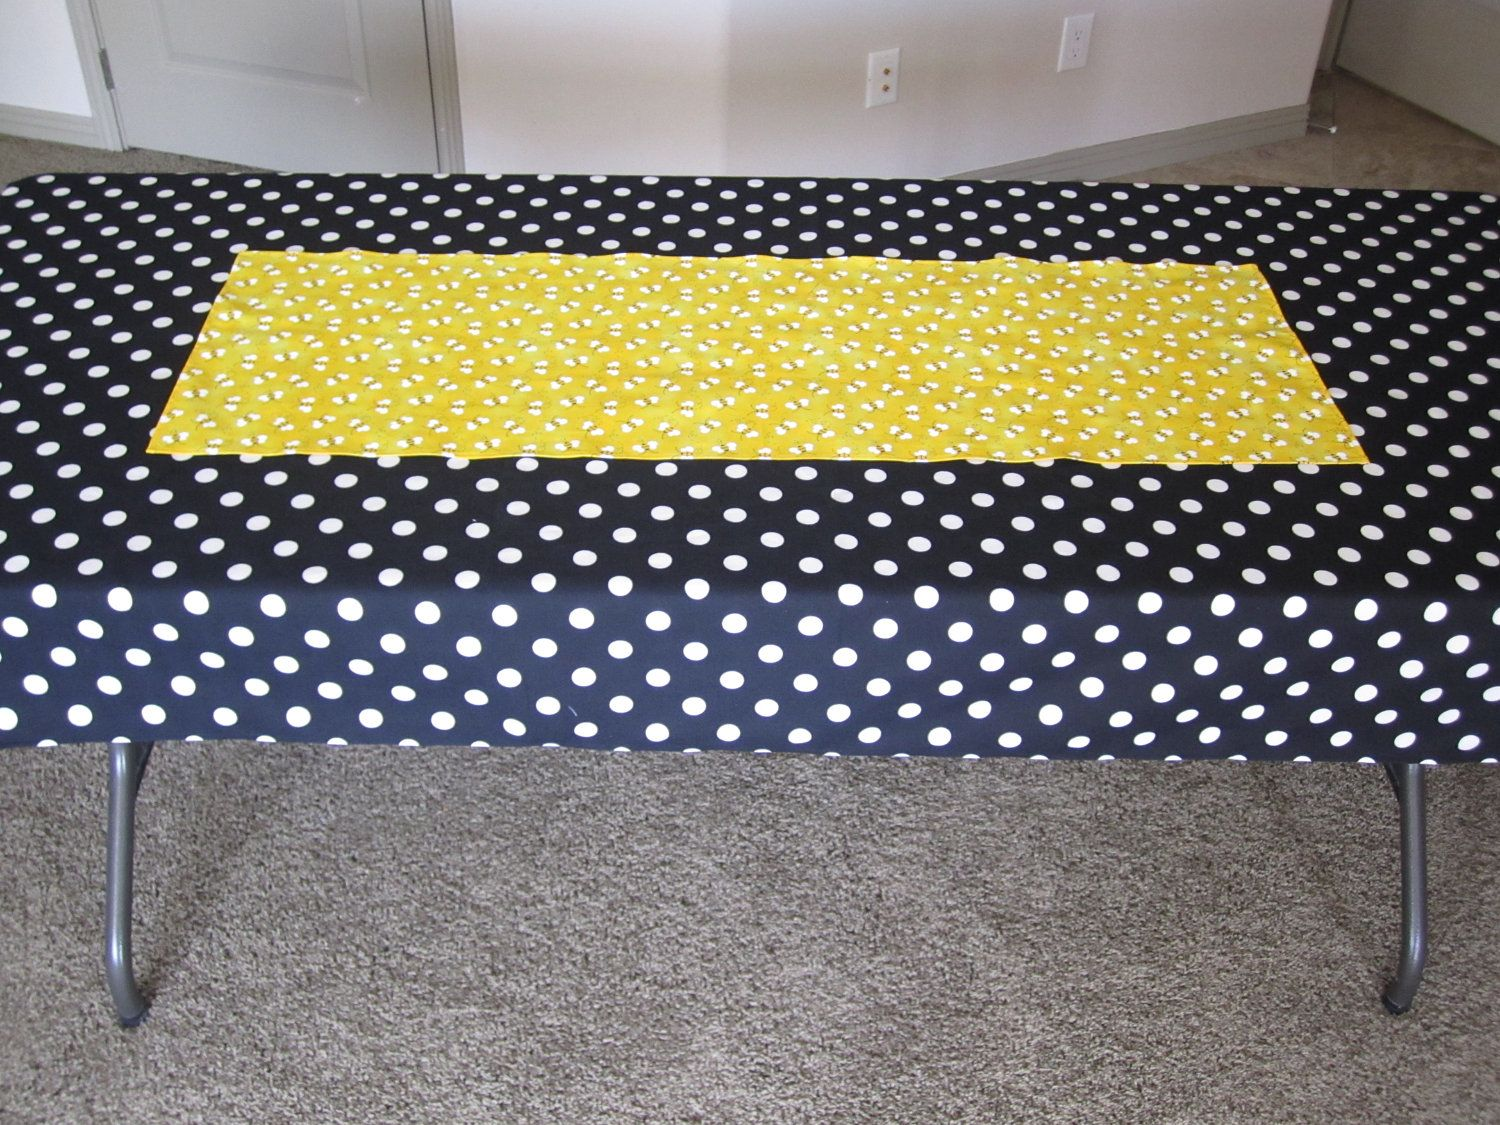 Perfect Bumble Bee Party Decoration   Bee Print Table Runner. $7.50, Via Etsy. |  Blakeu0027s Bee Bash | Pinterest | Bumble Bees, Bees And Decoration